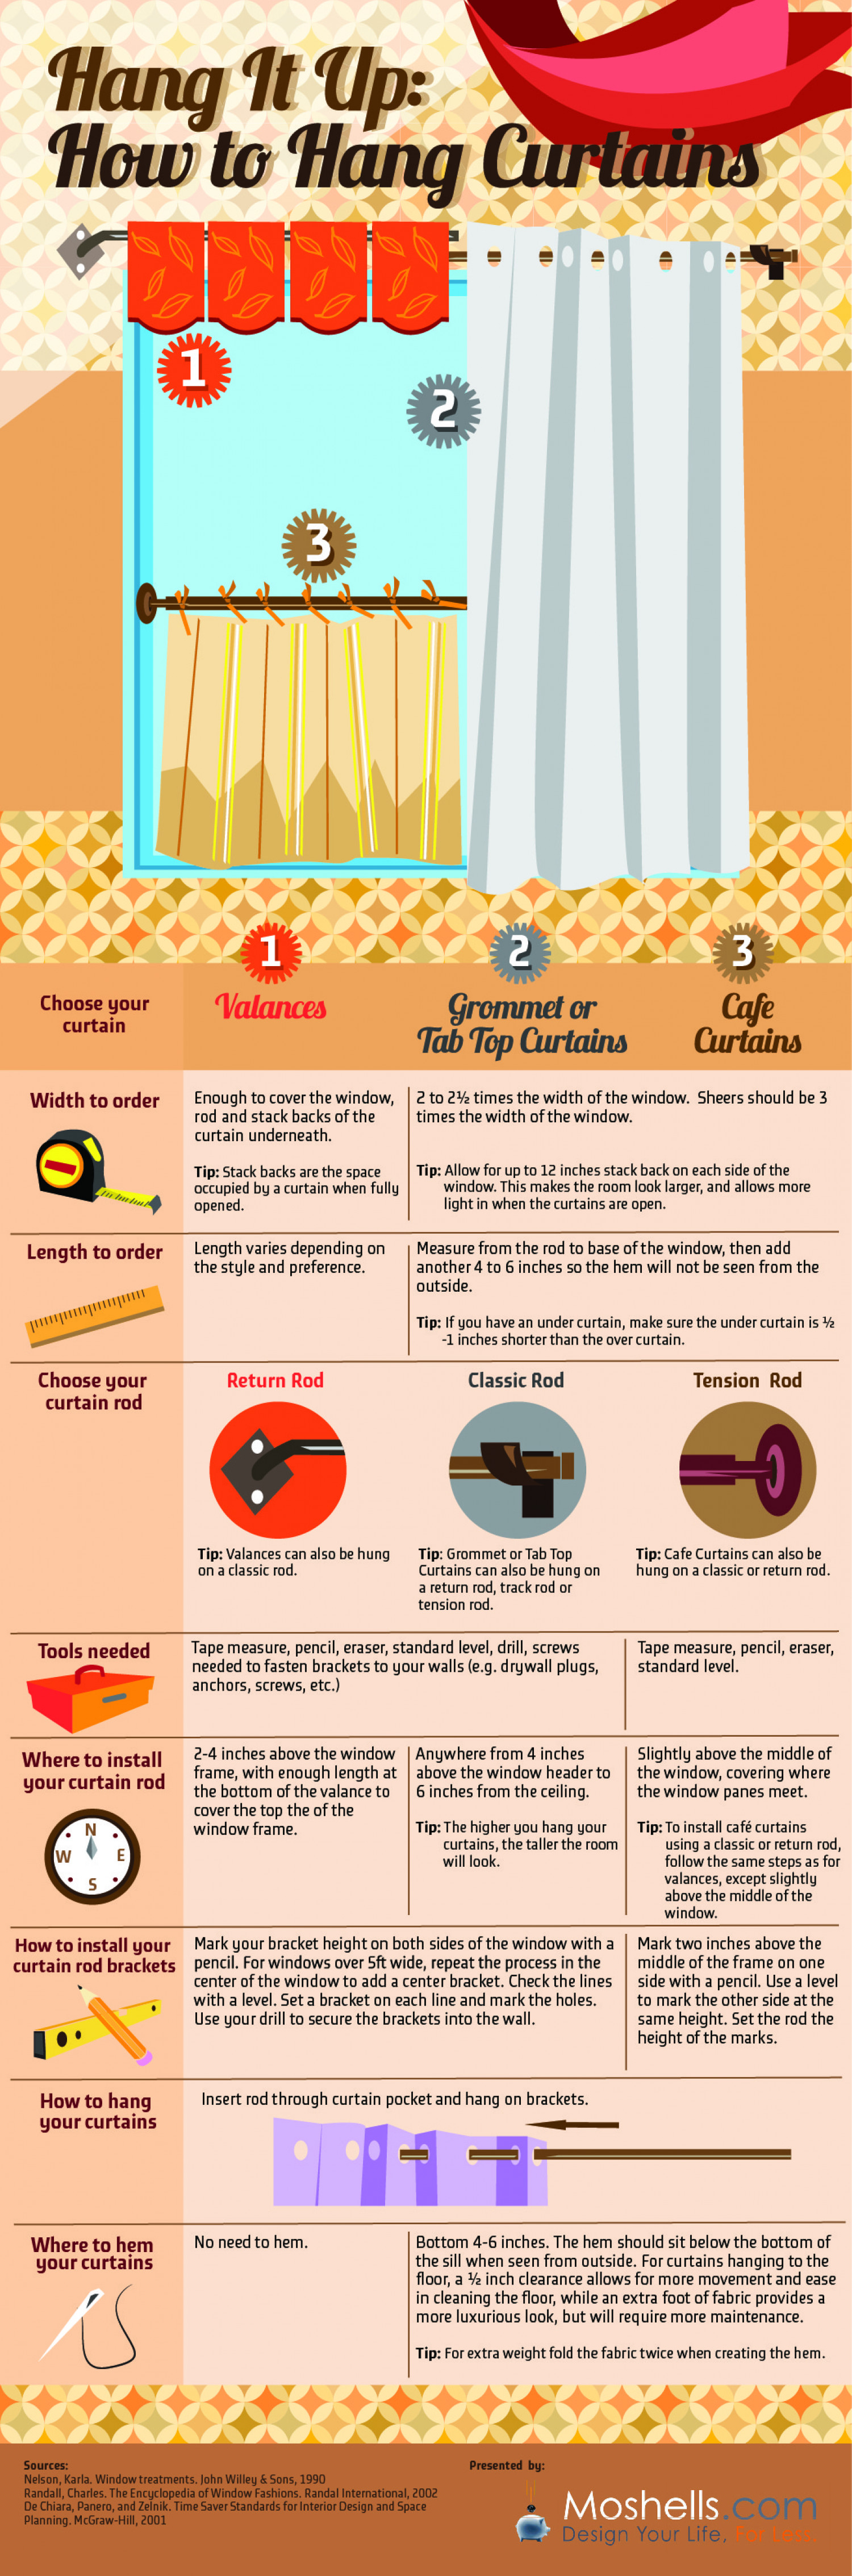 Hang It Up: How To Hang Curtains Infographic